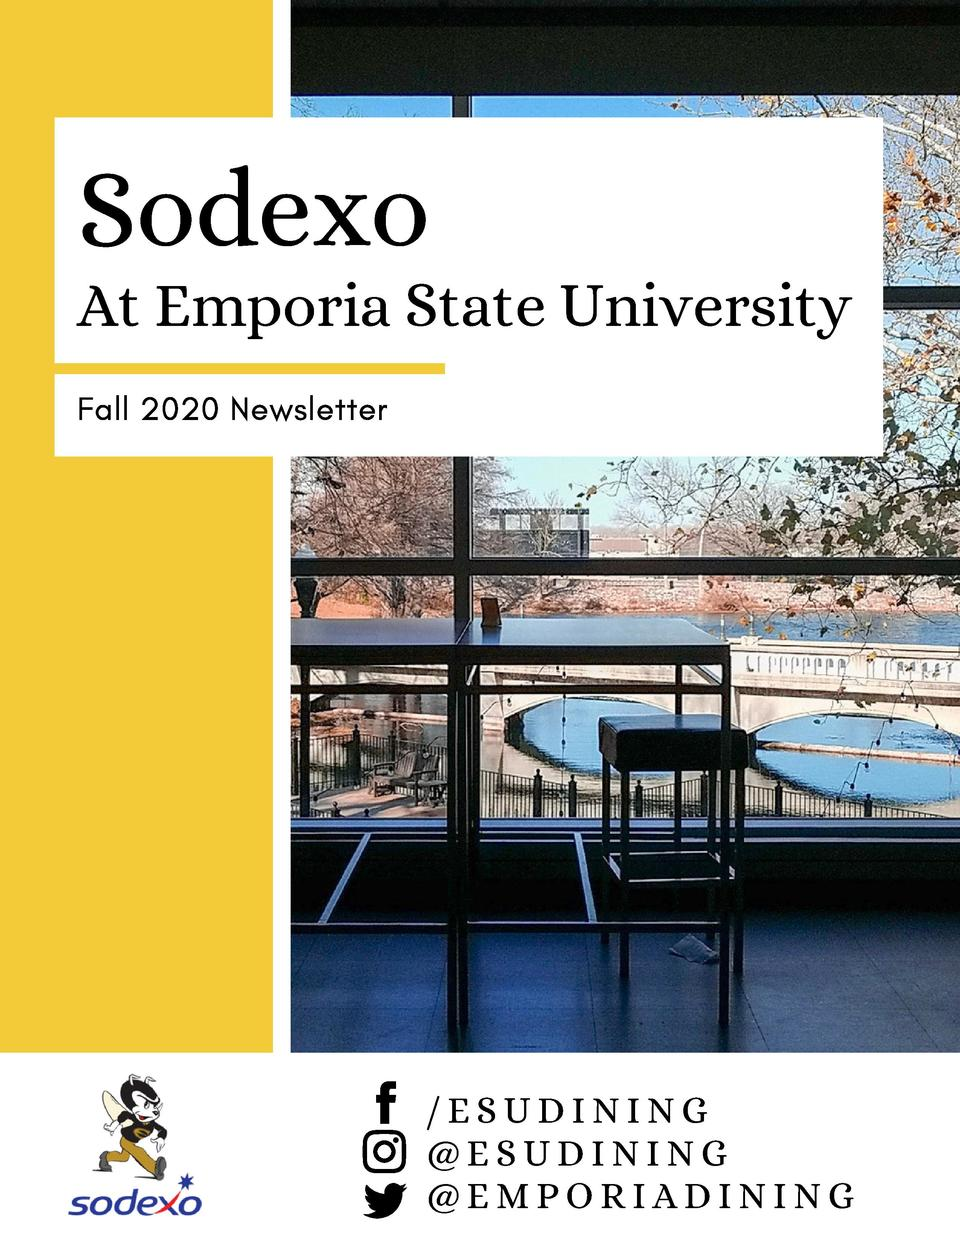 Sodexo  At Emporia State University Fall 2020 Newsletter   ESUDINING  ESUDINING  EMPORIADINING